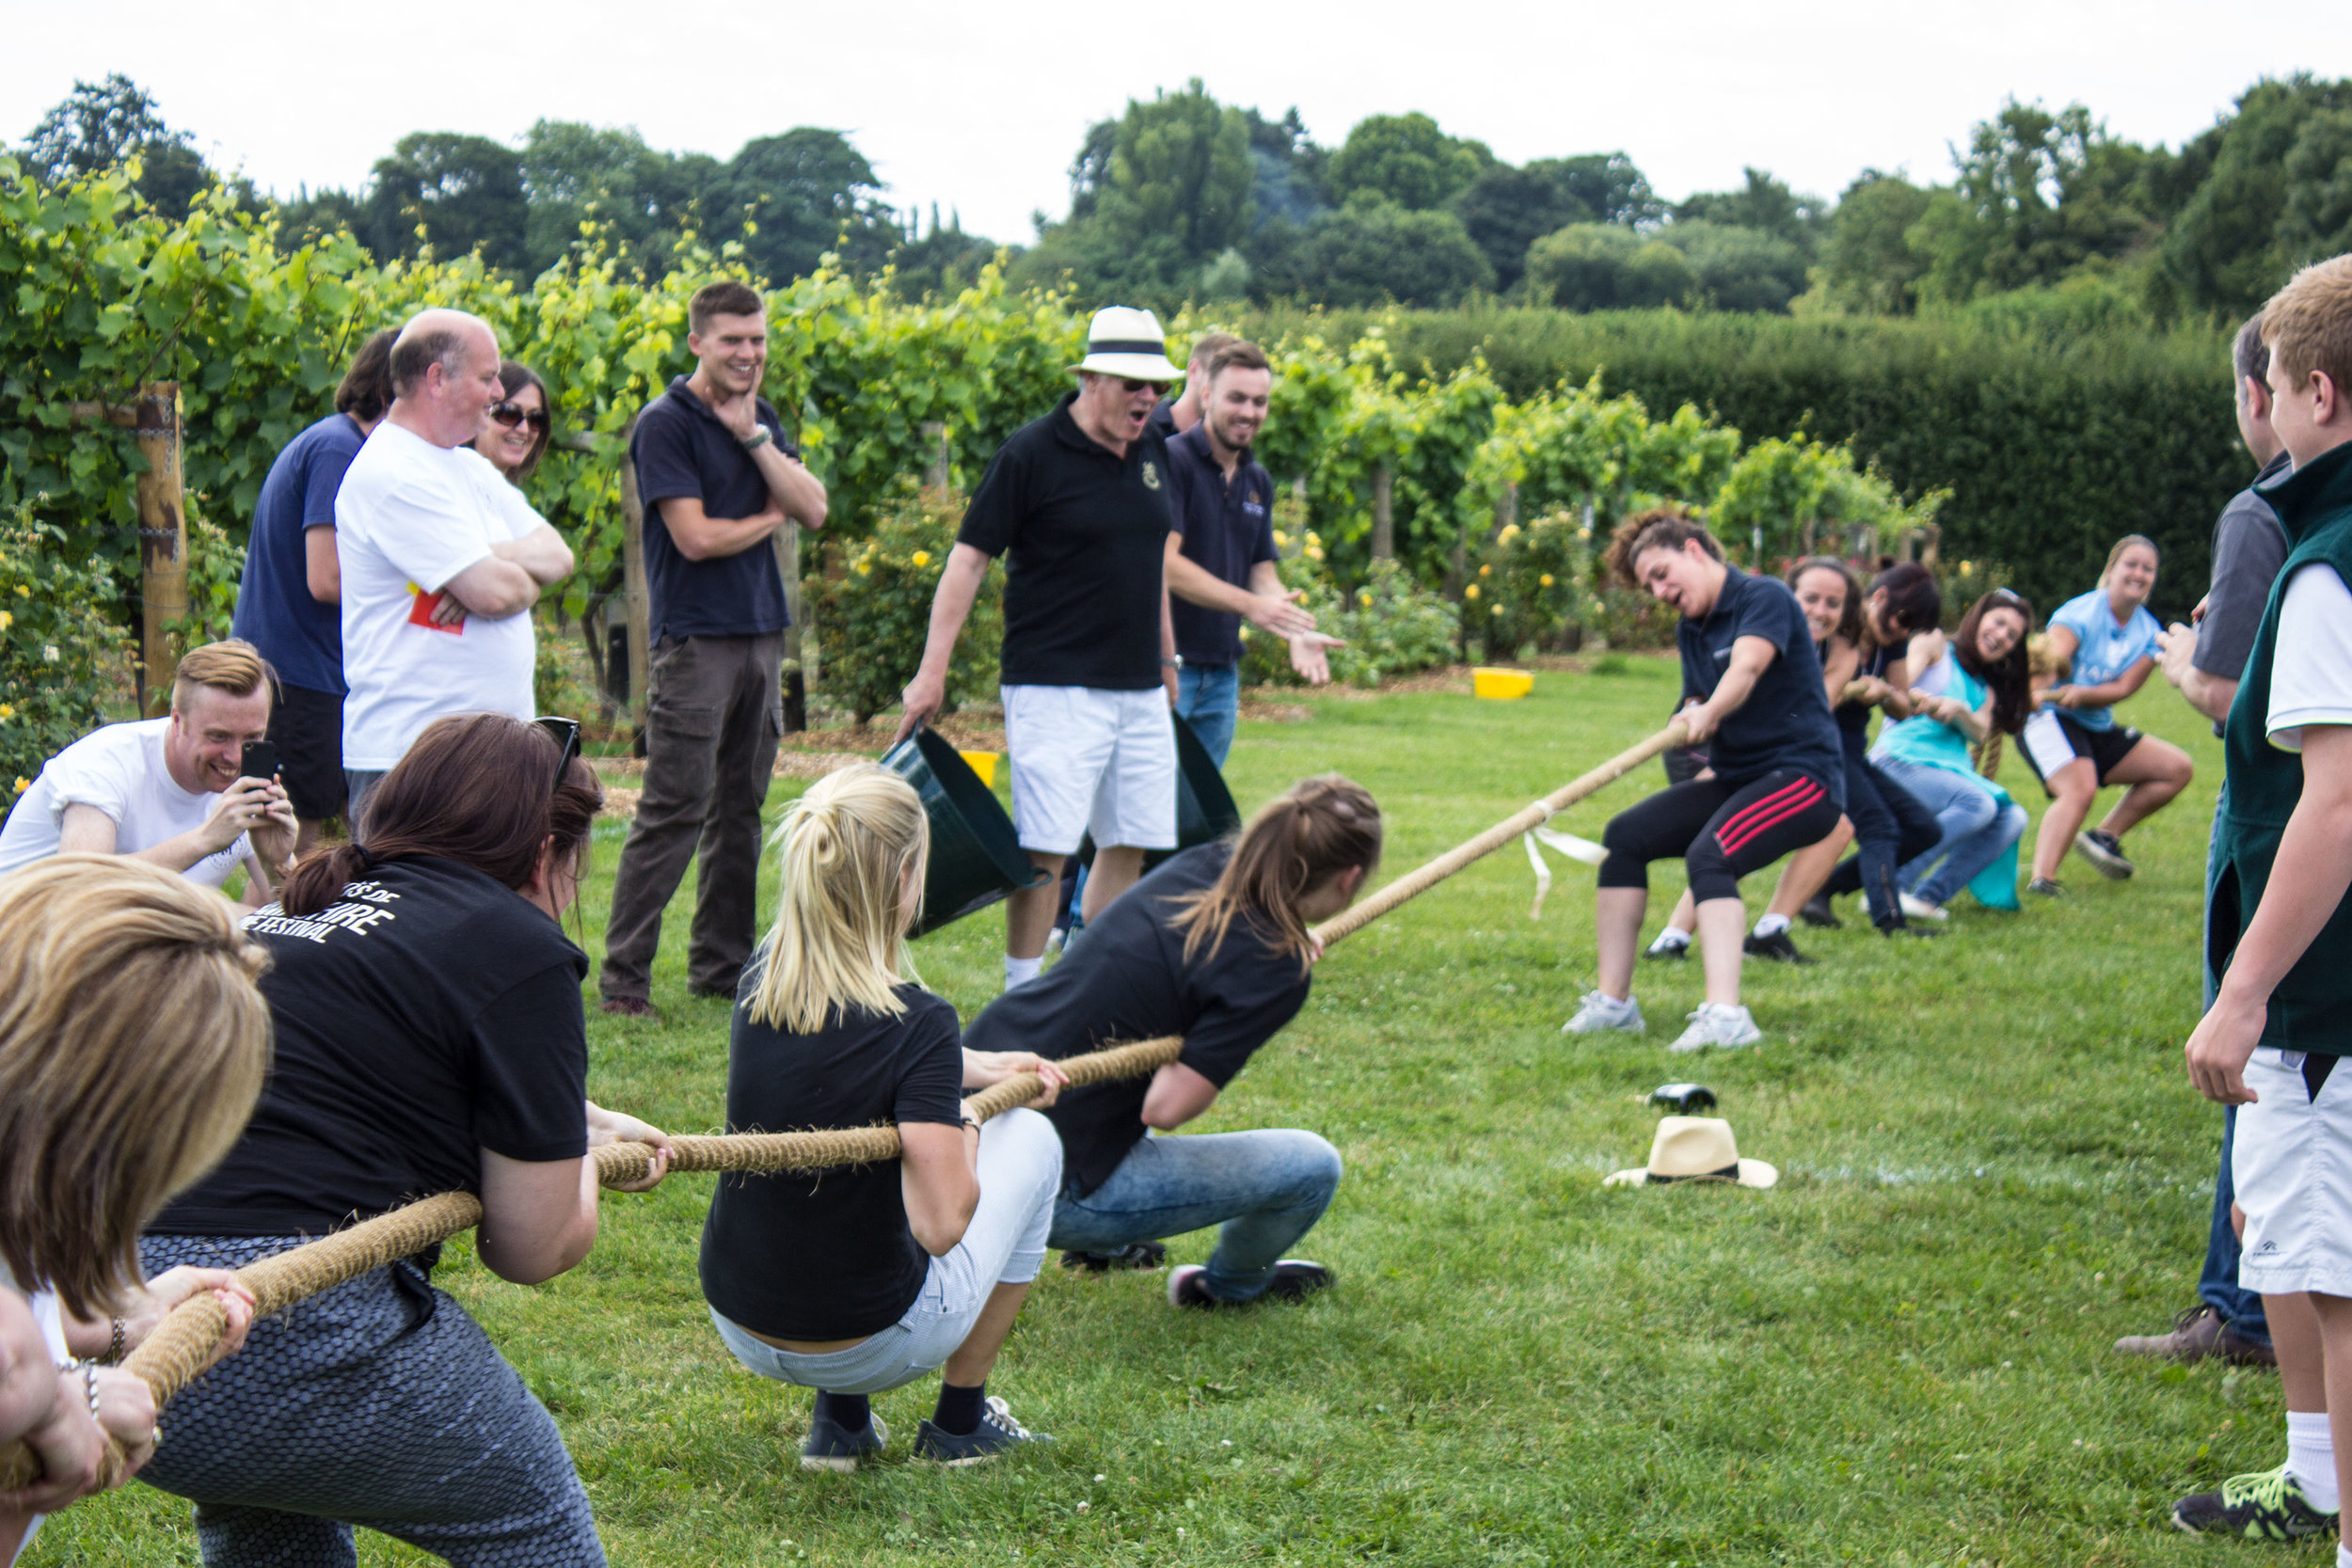 GBW_Tug of War and supporters - girls.jpg